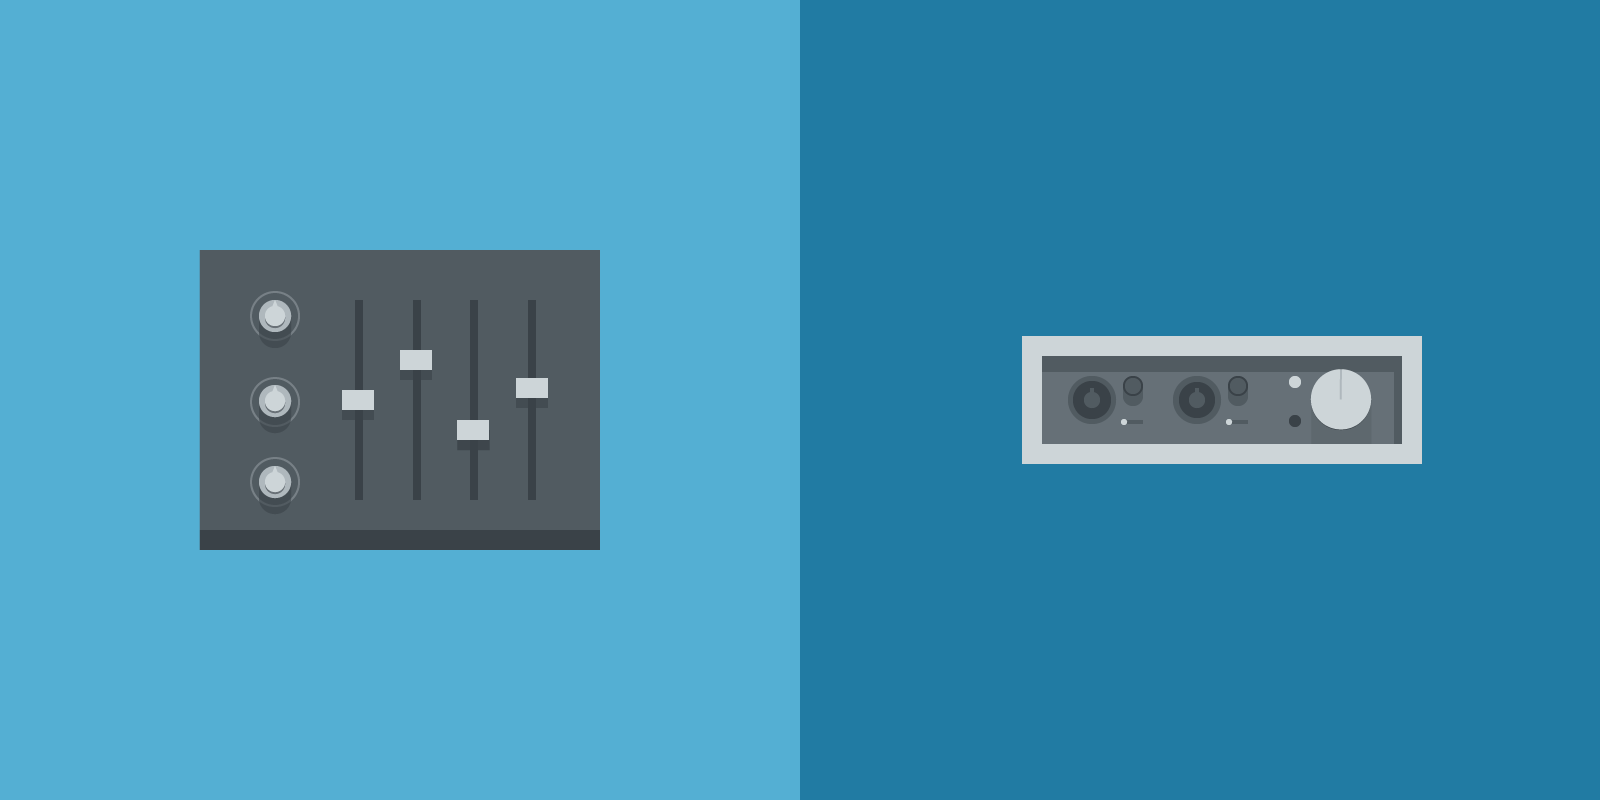 047: Hardware Mixer VS Audio Interface | The Podcast Dude